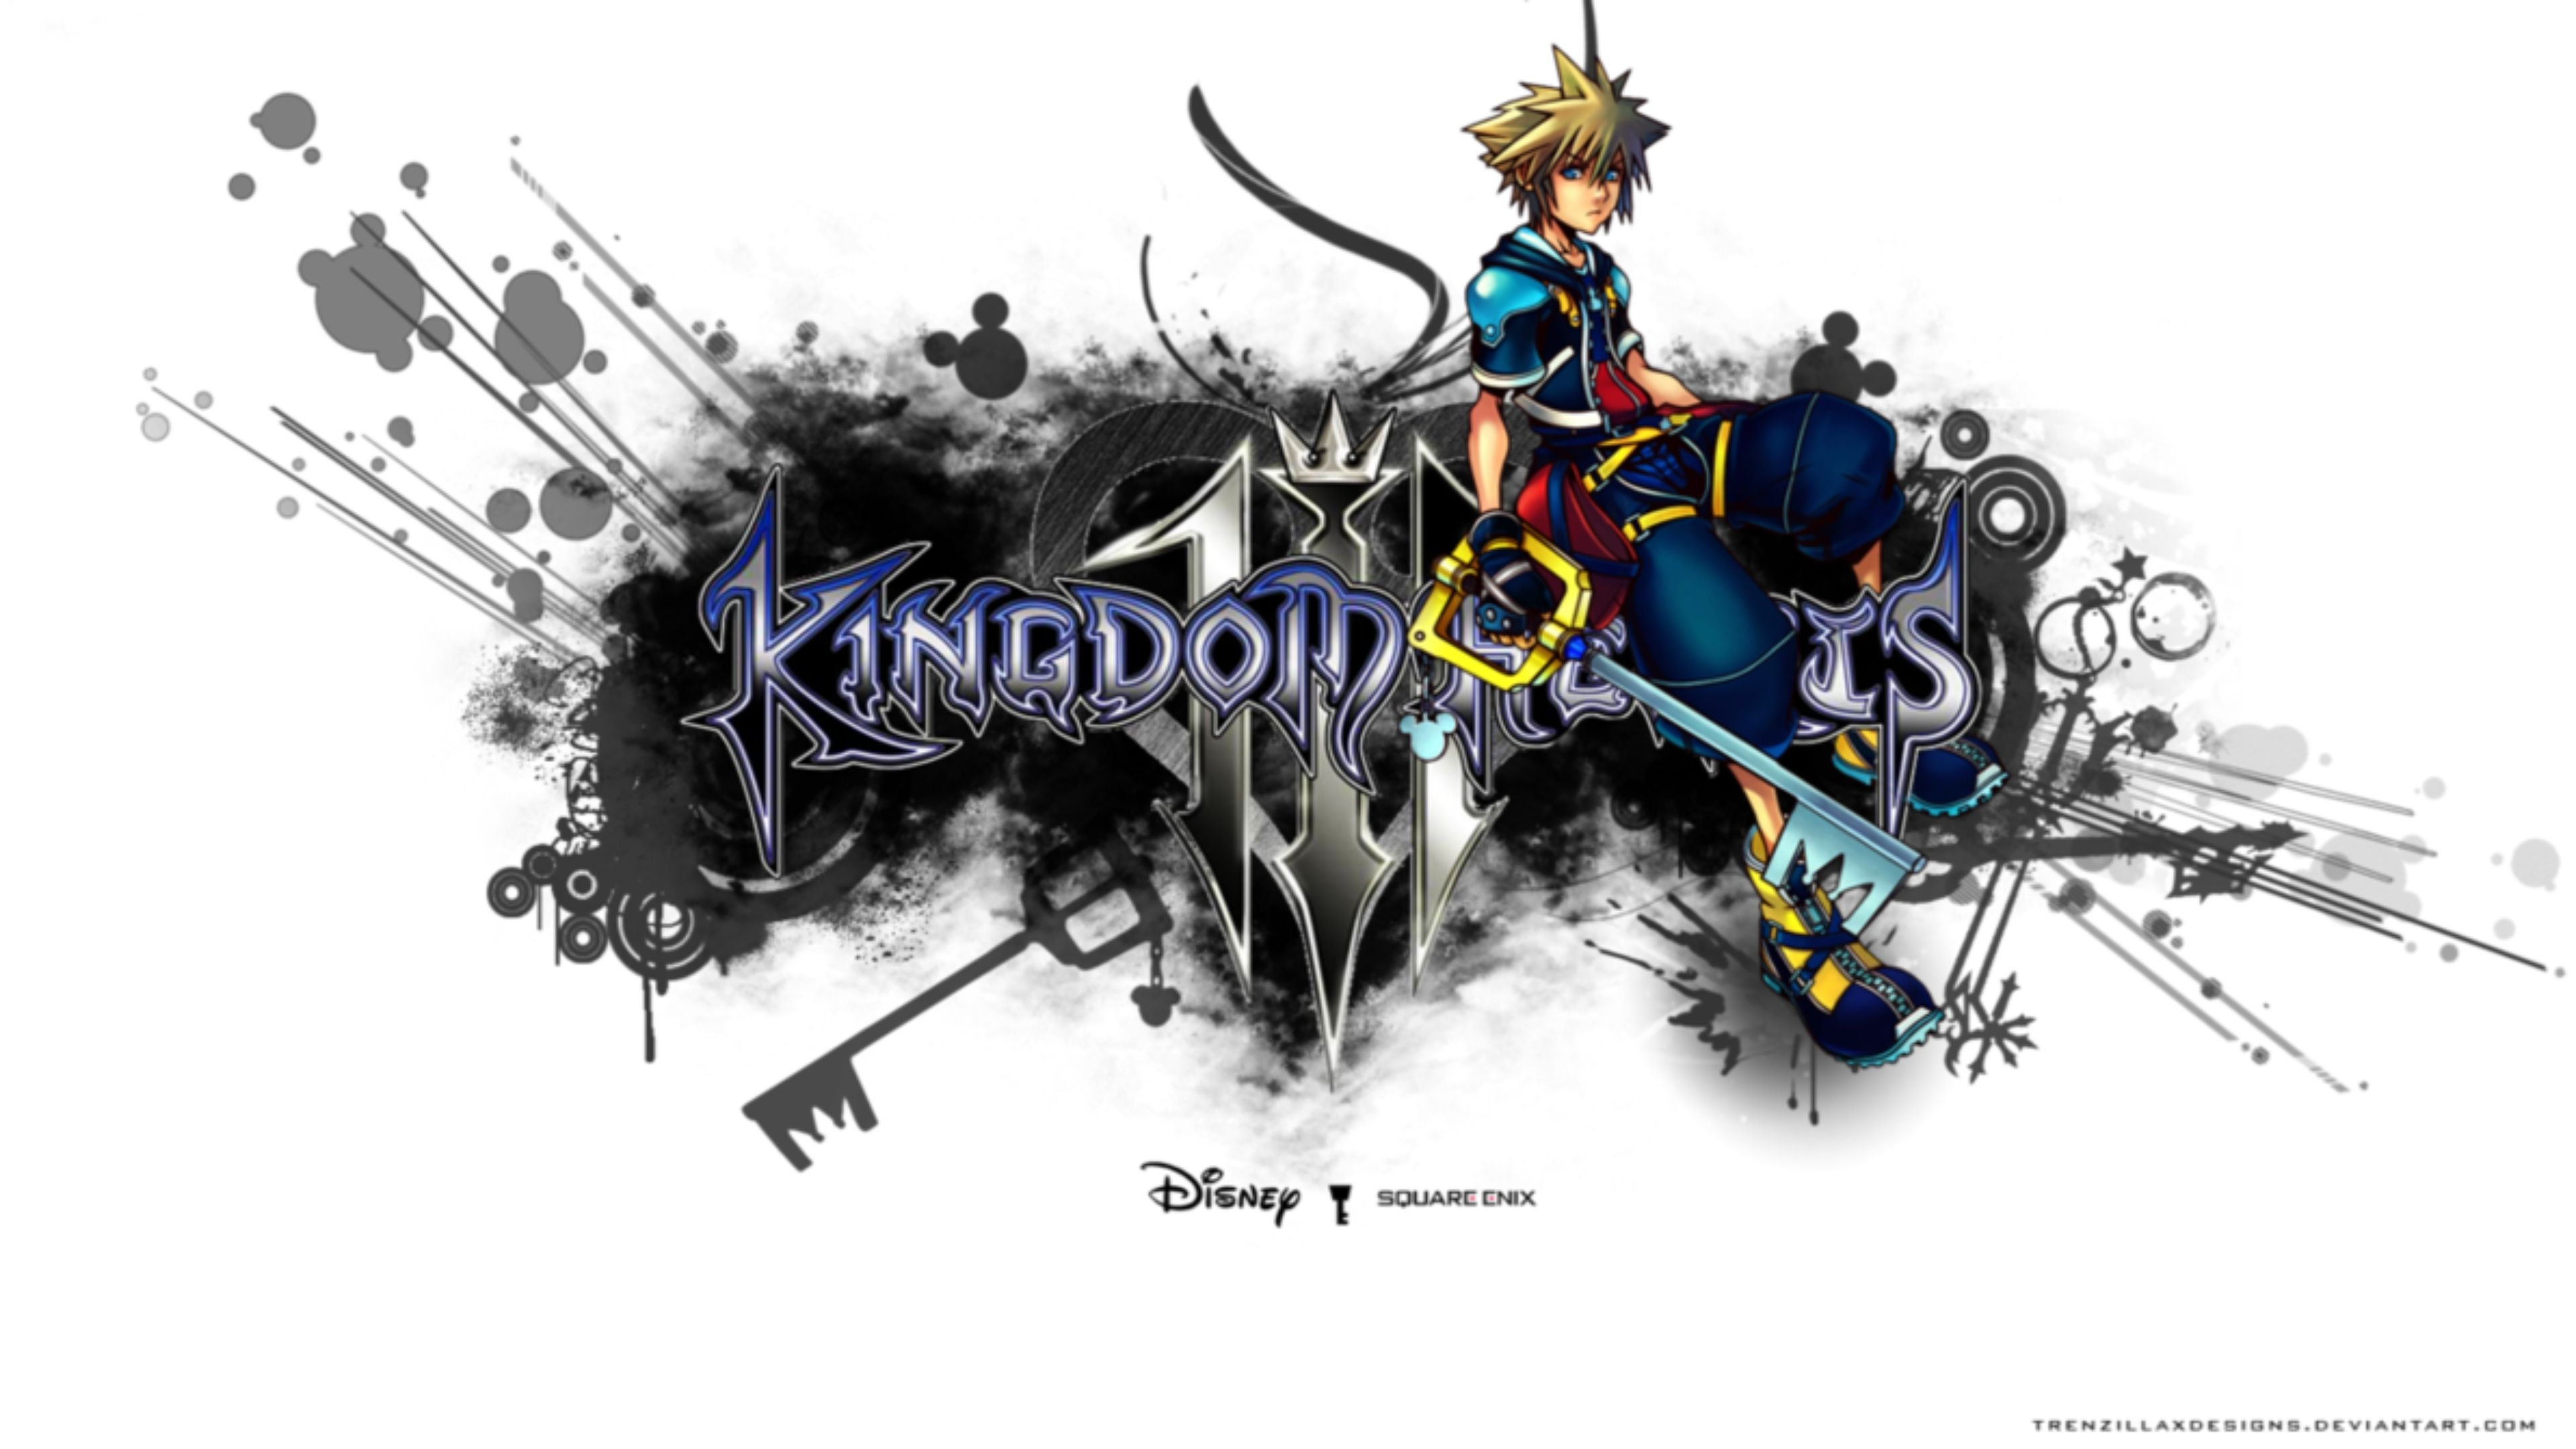 2016 launch kingdom hearts 3 4k wallpaper | free 4k wallpaper